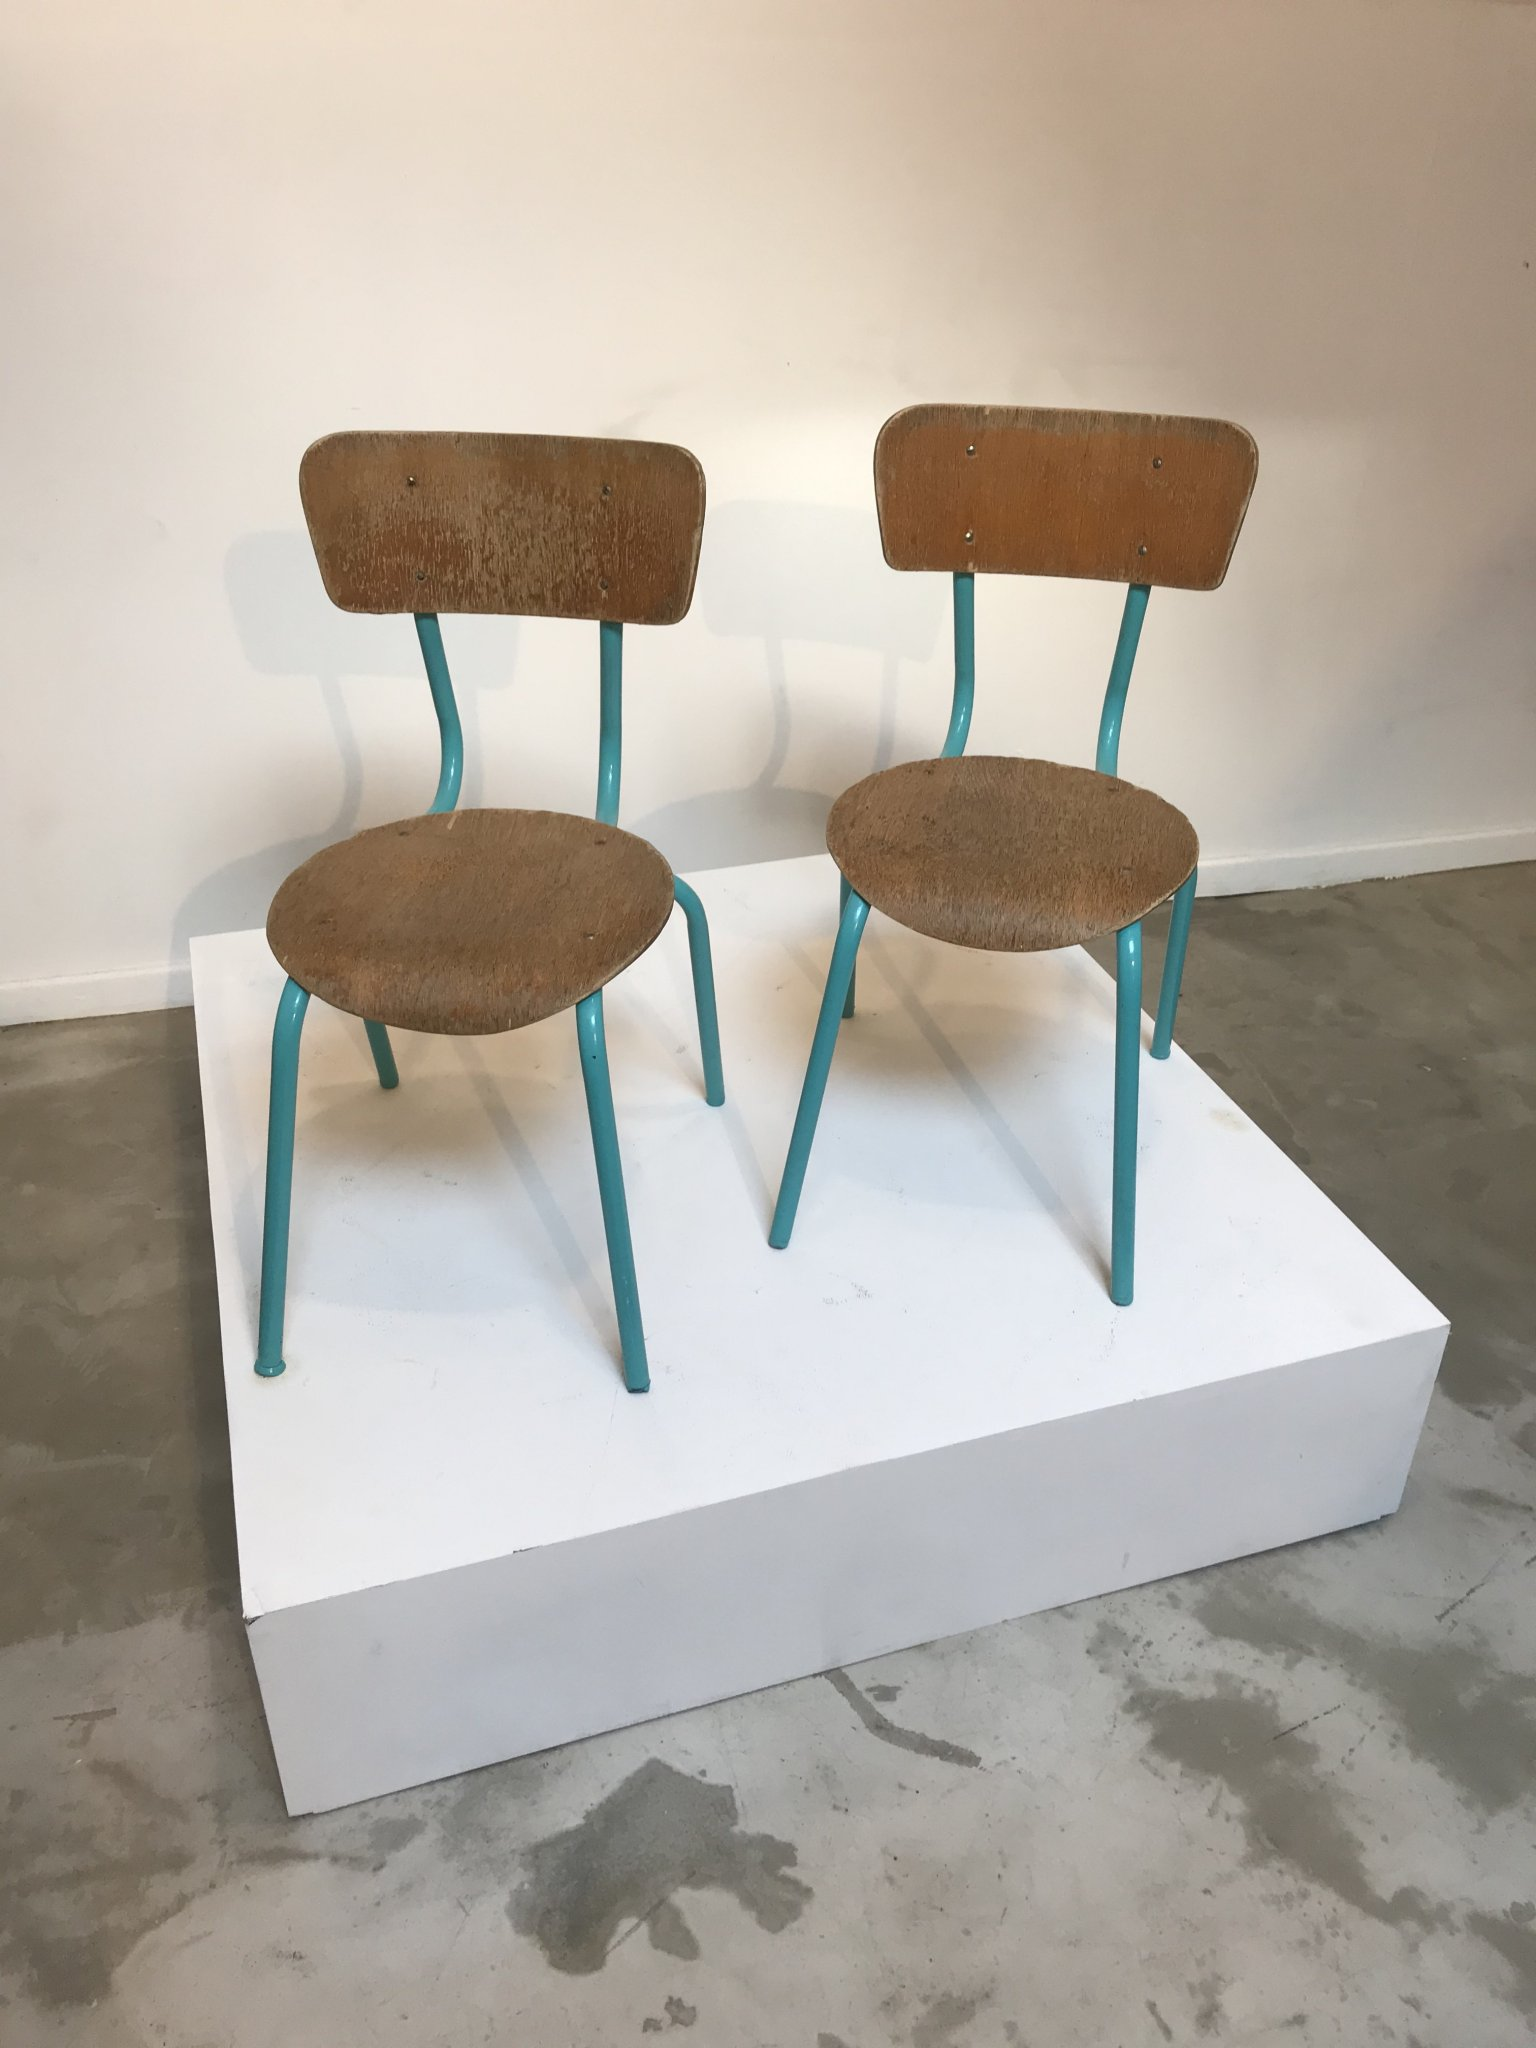 2 blue/light green chairs for kids